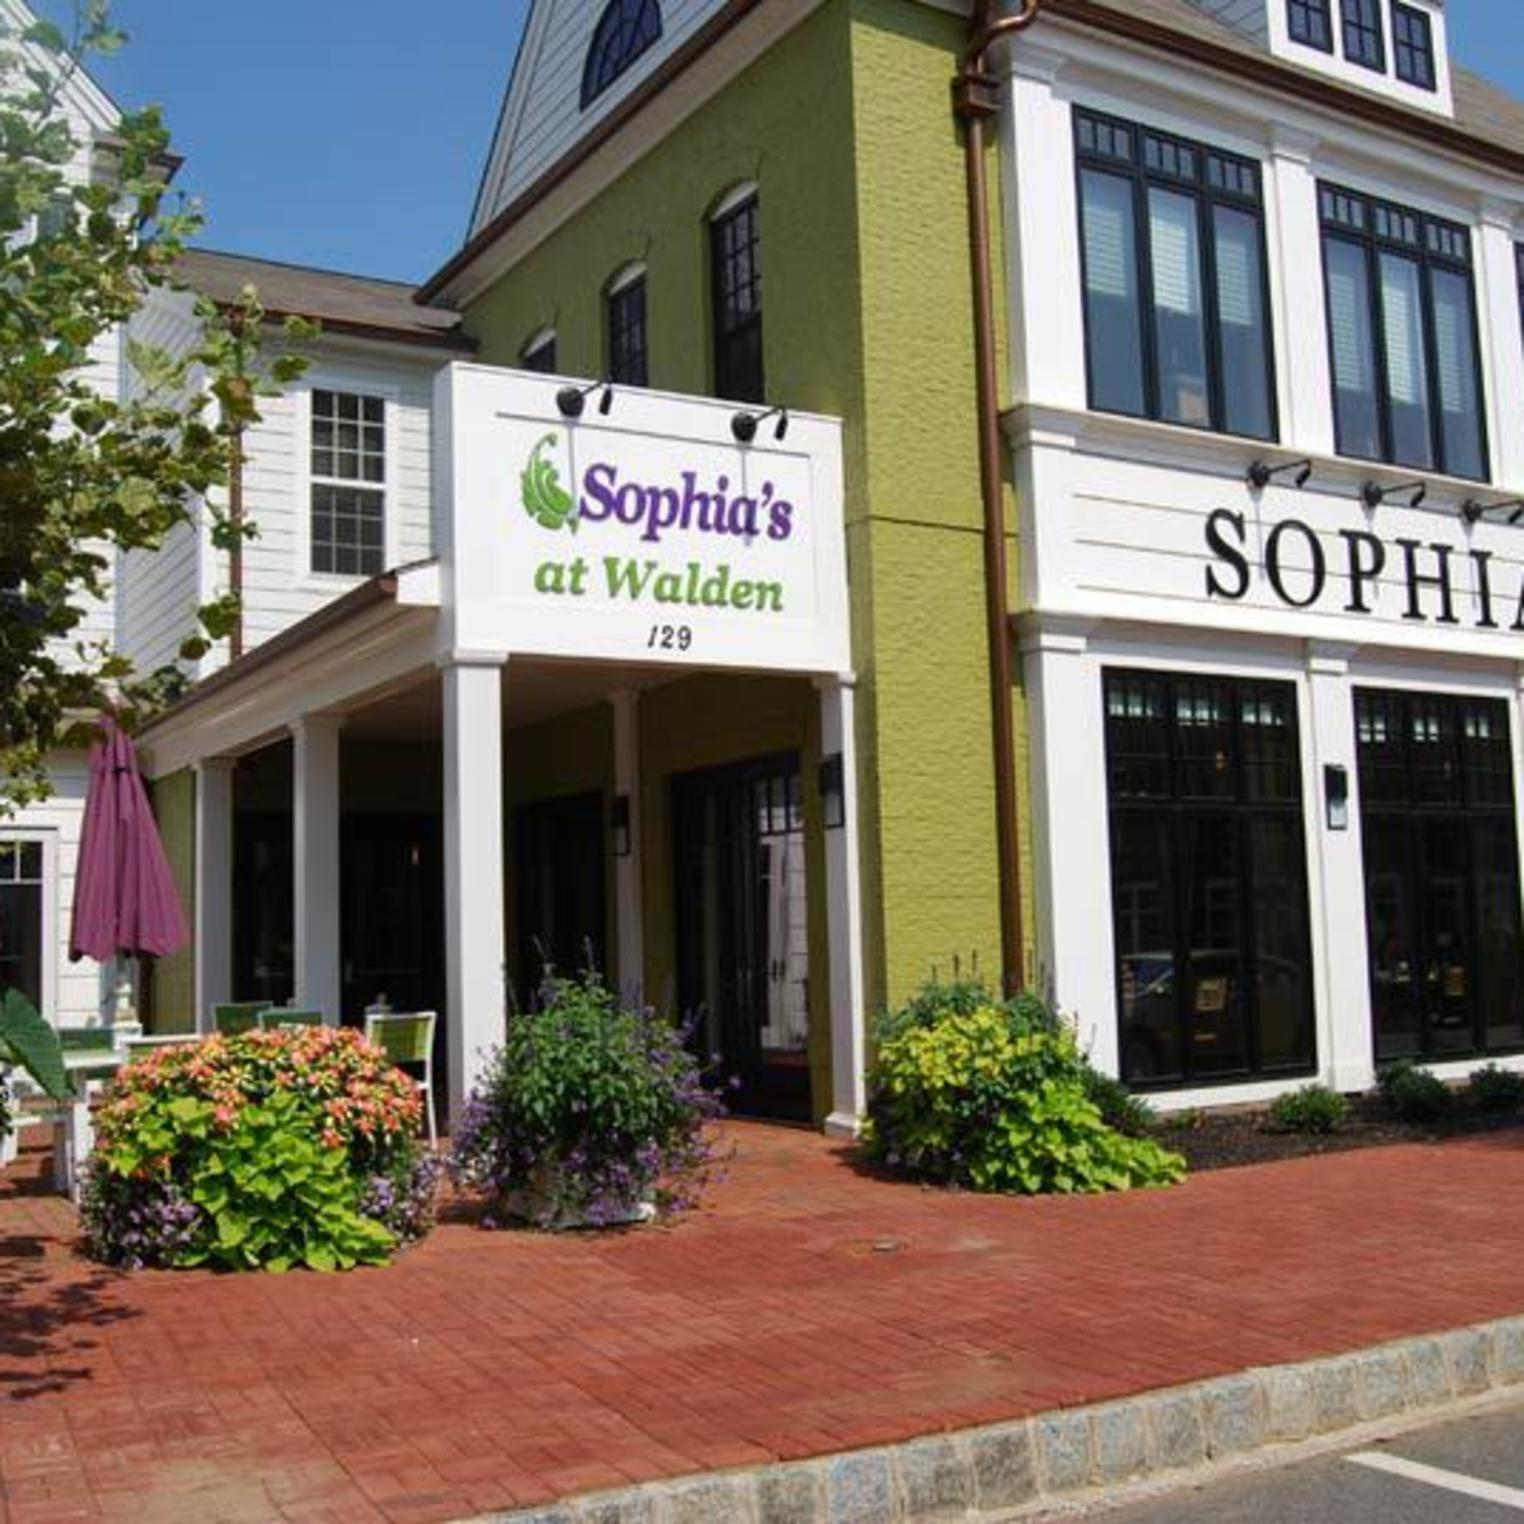 Sophia's at Walden Exterior